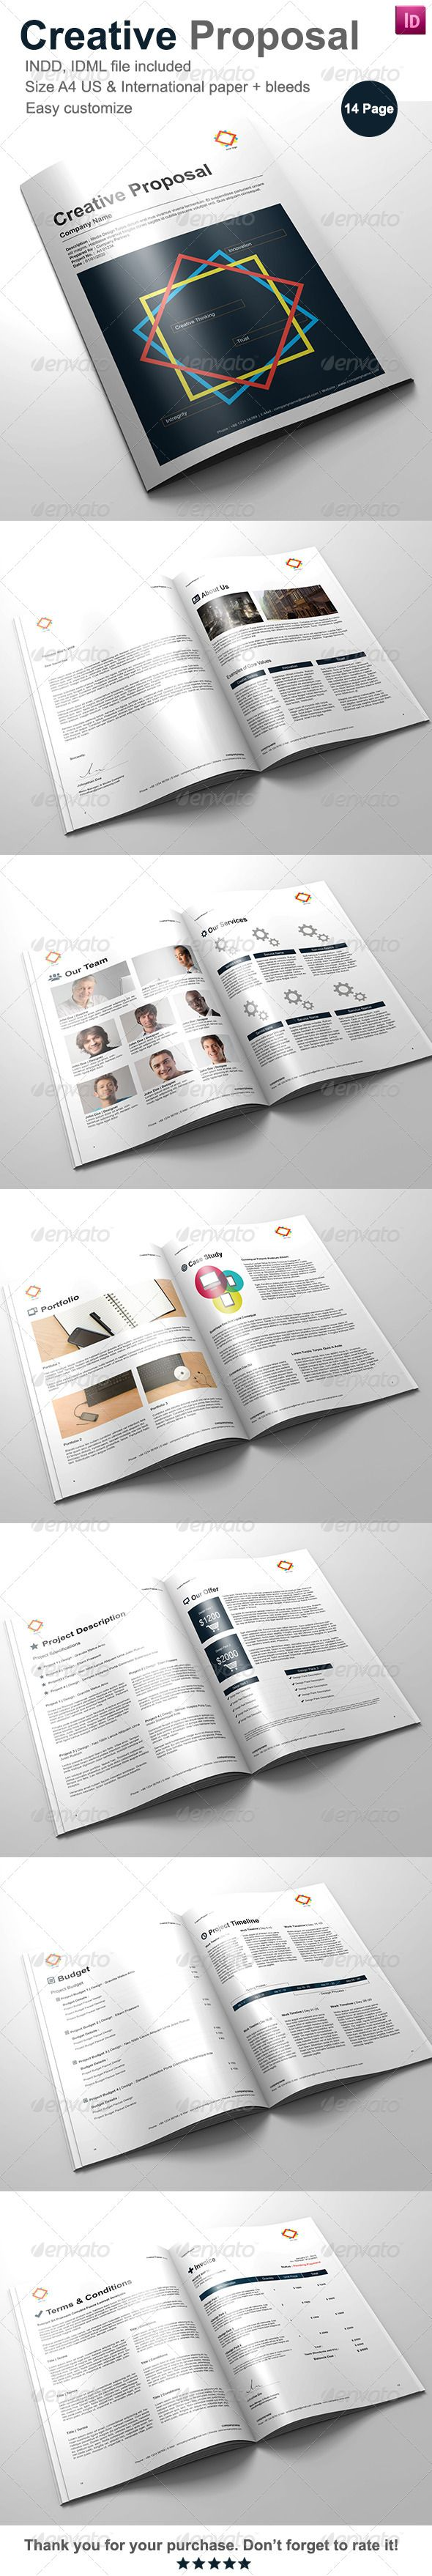 Commercial Proposal Format Simple 504 Best Business Proposal Images On Pinterest  Proposal Templates .